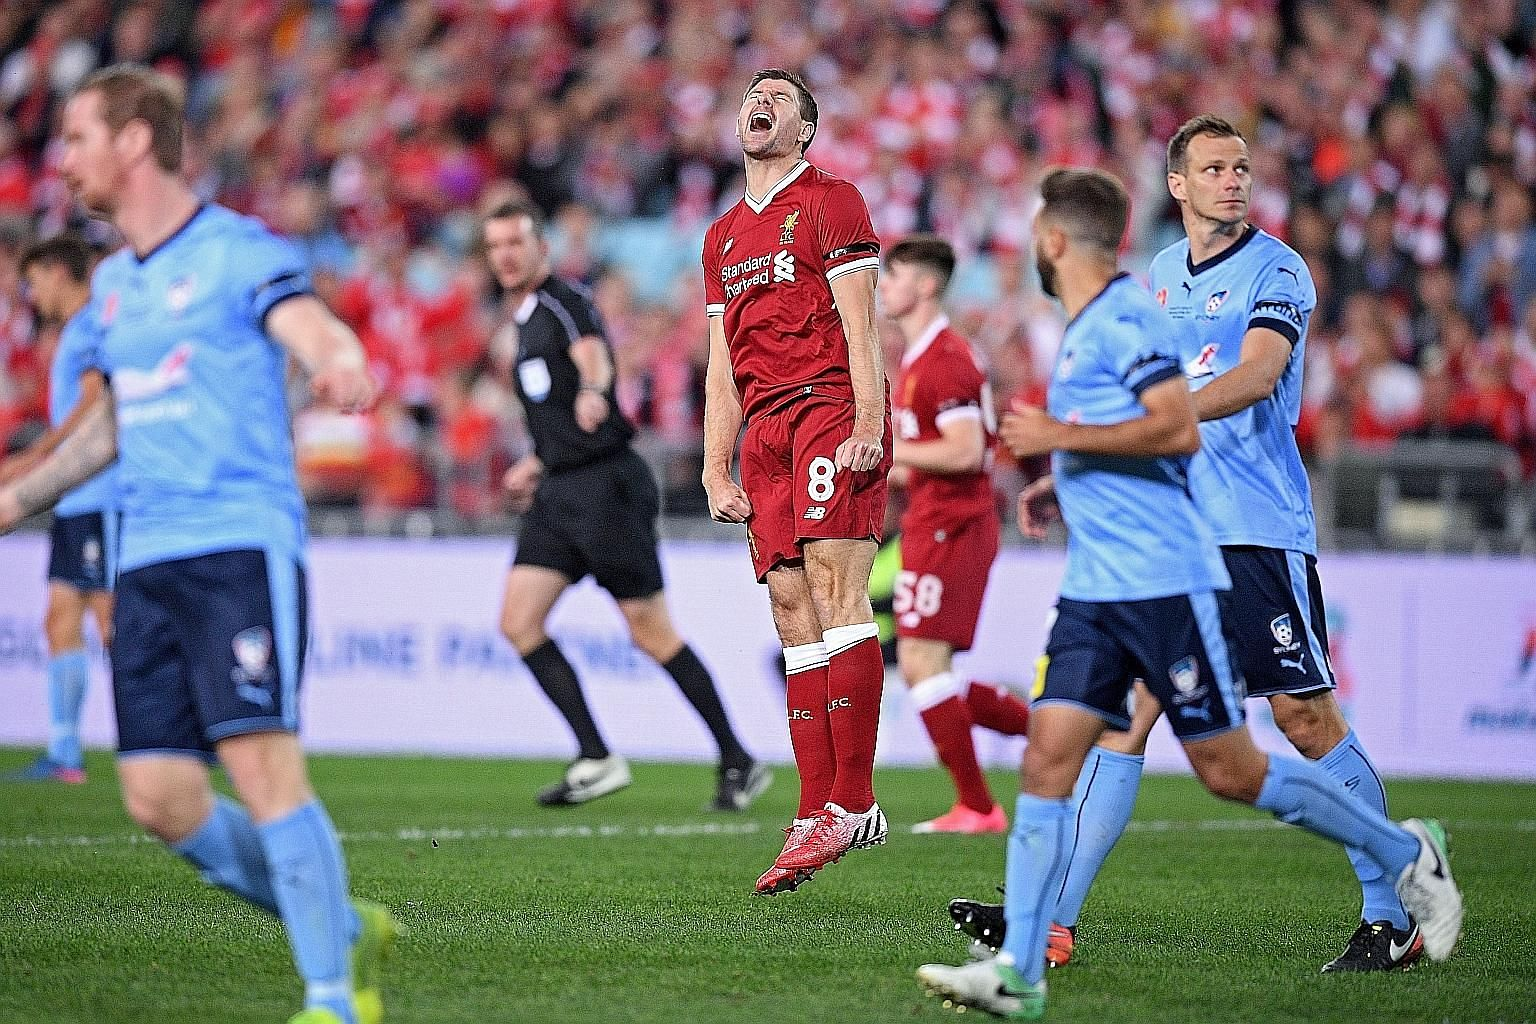 Liverpool great Steven Gerrard reacting after missing a shot at goal during the exhibition match against Sydney FC.